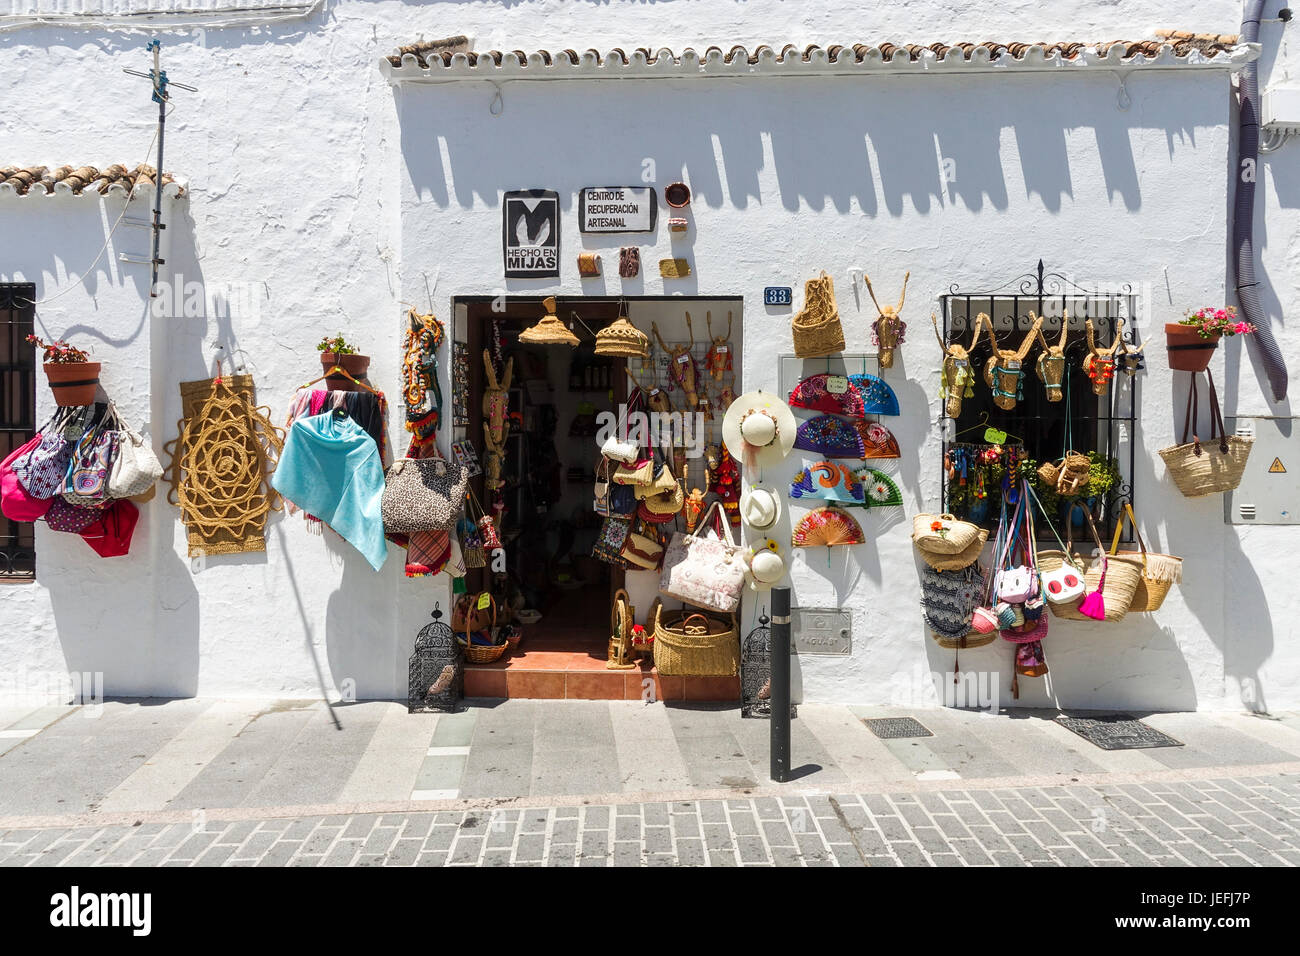 Souvenir shop selling local artisinal products in the white village of Mijas, andalusia, Spain. Stock Photo